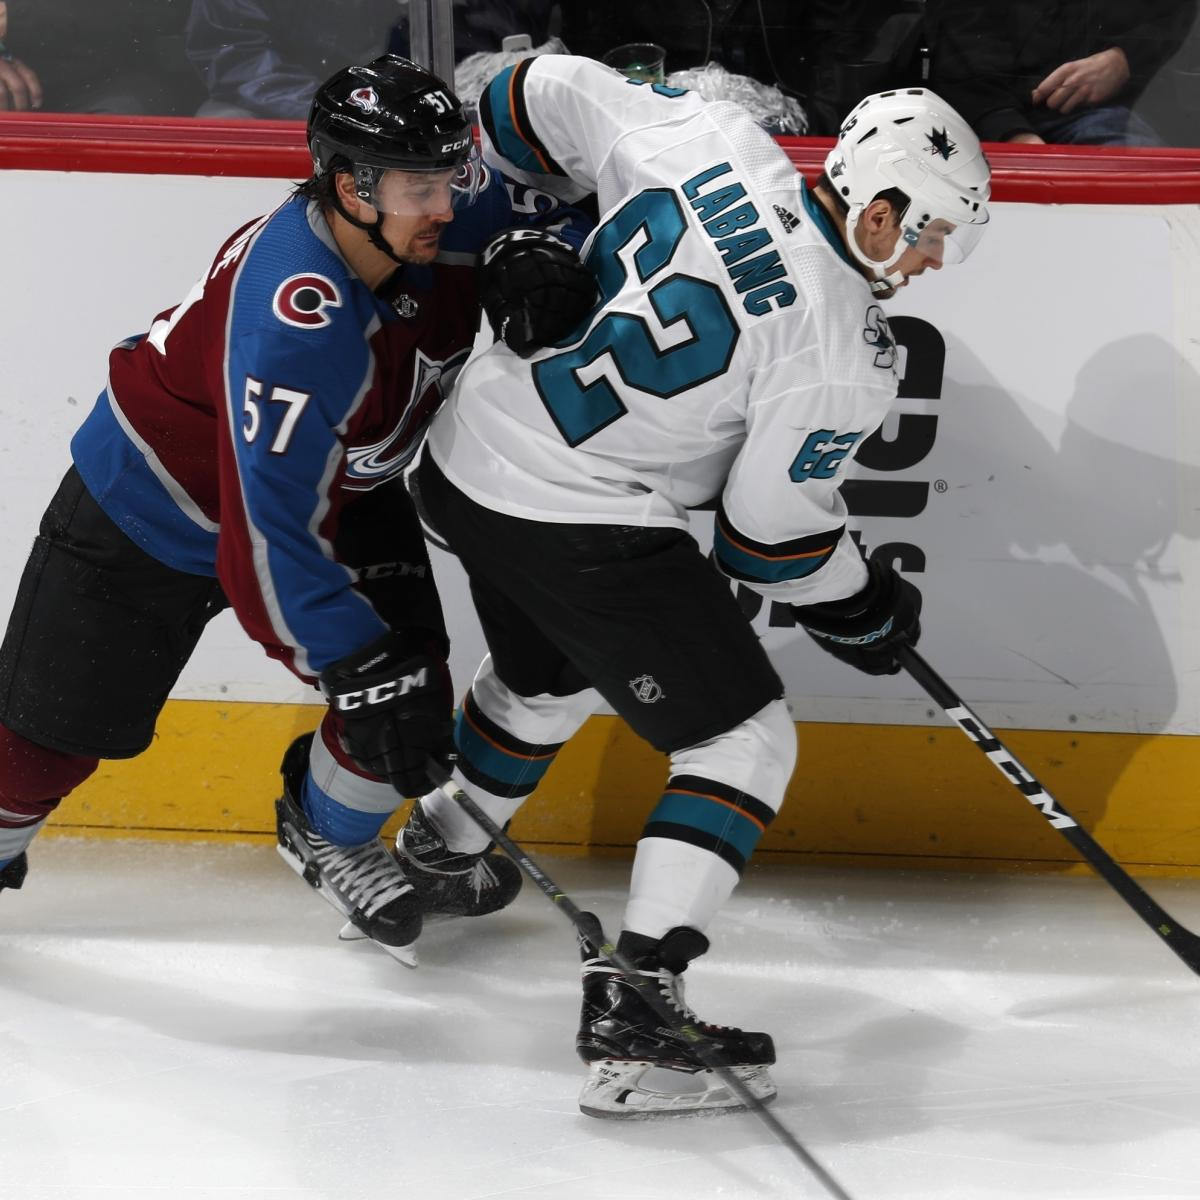 NHL Playoffs 2019: Stanley Cup Title Odds, Latest Schedule